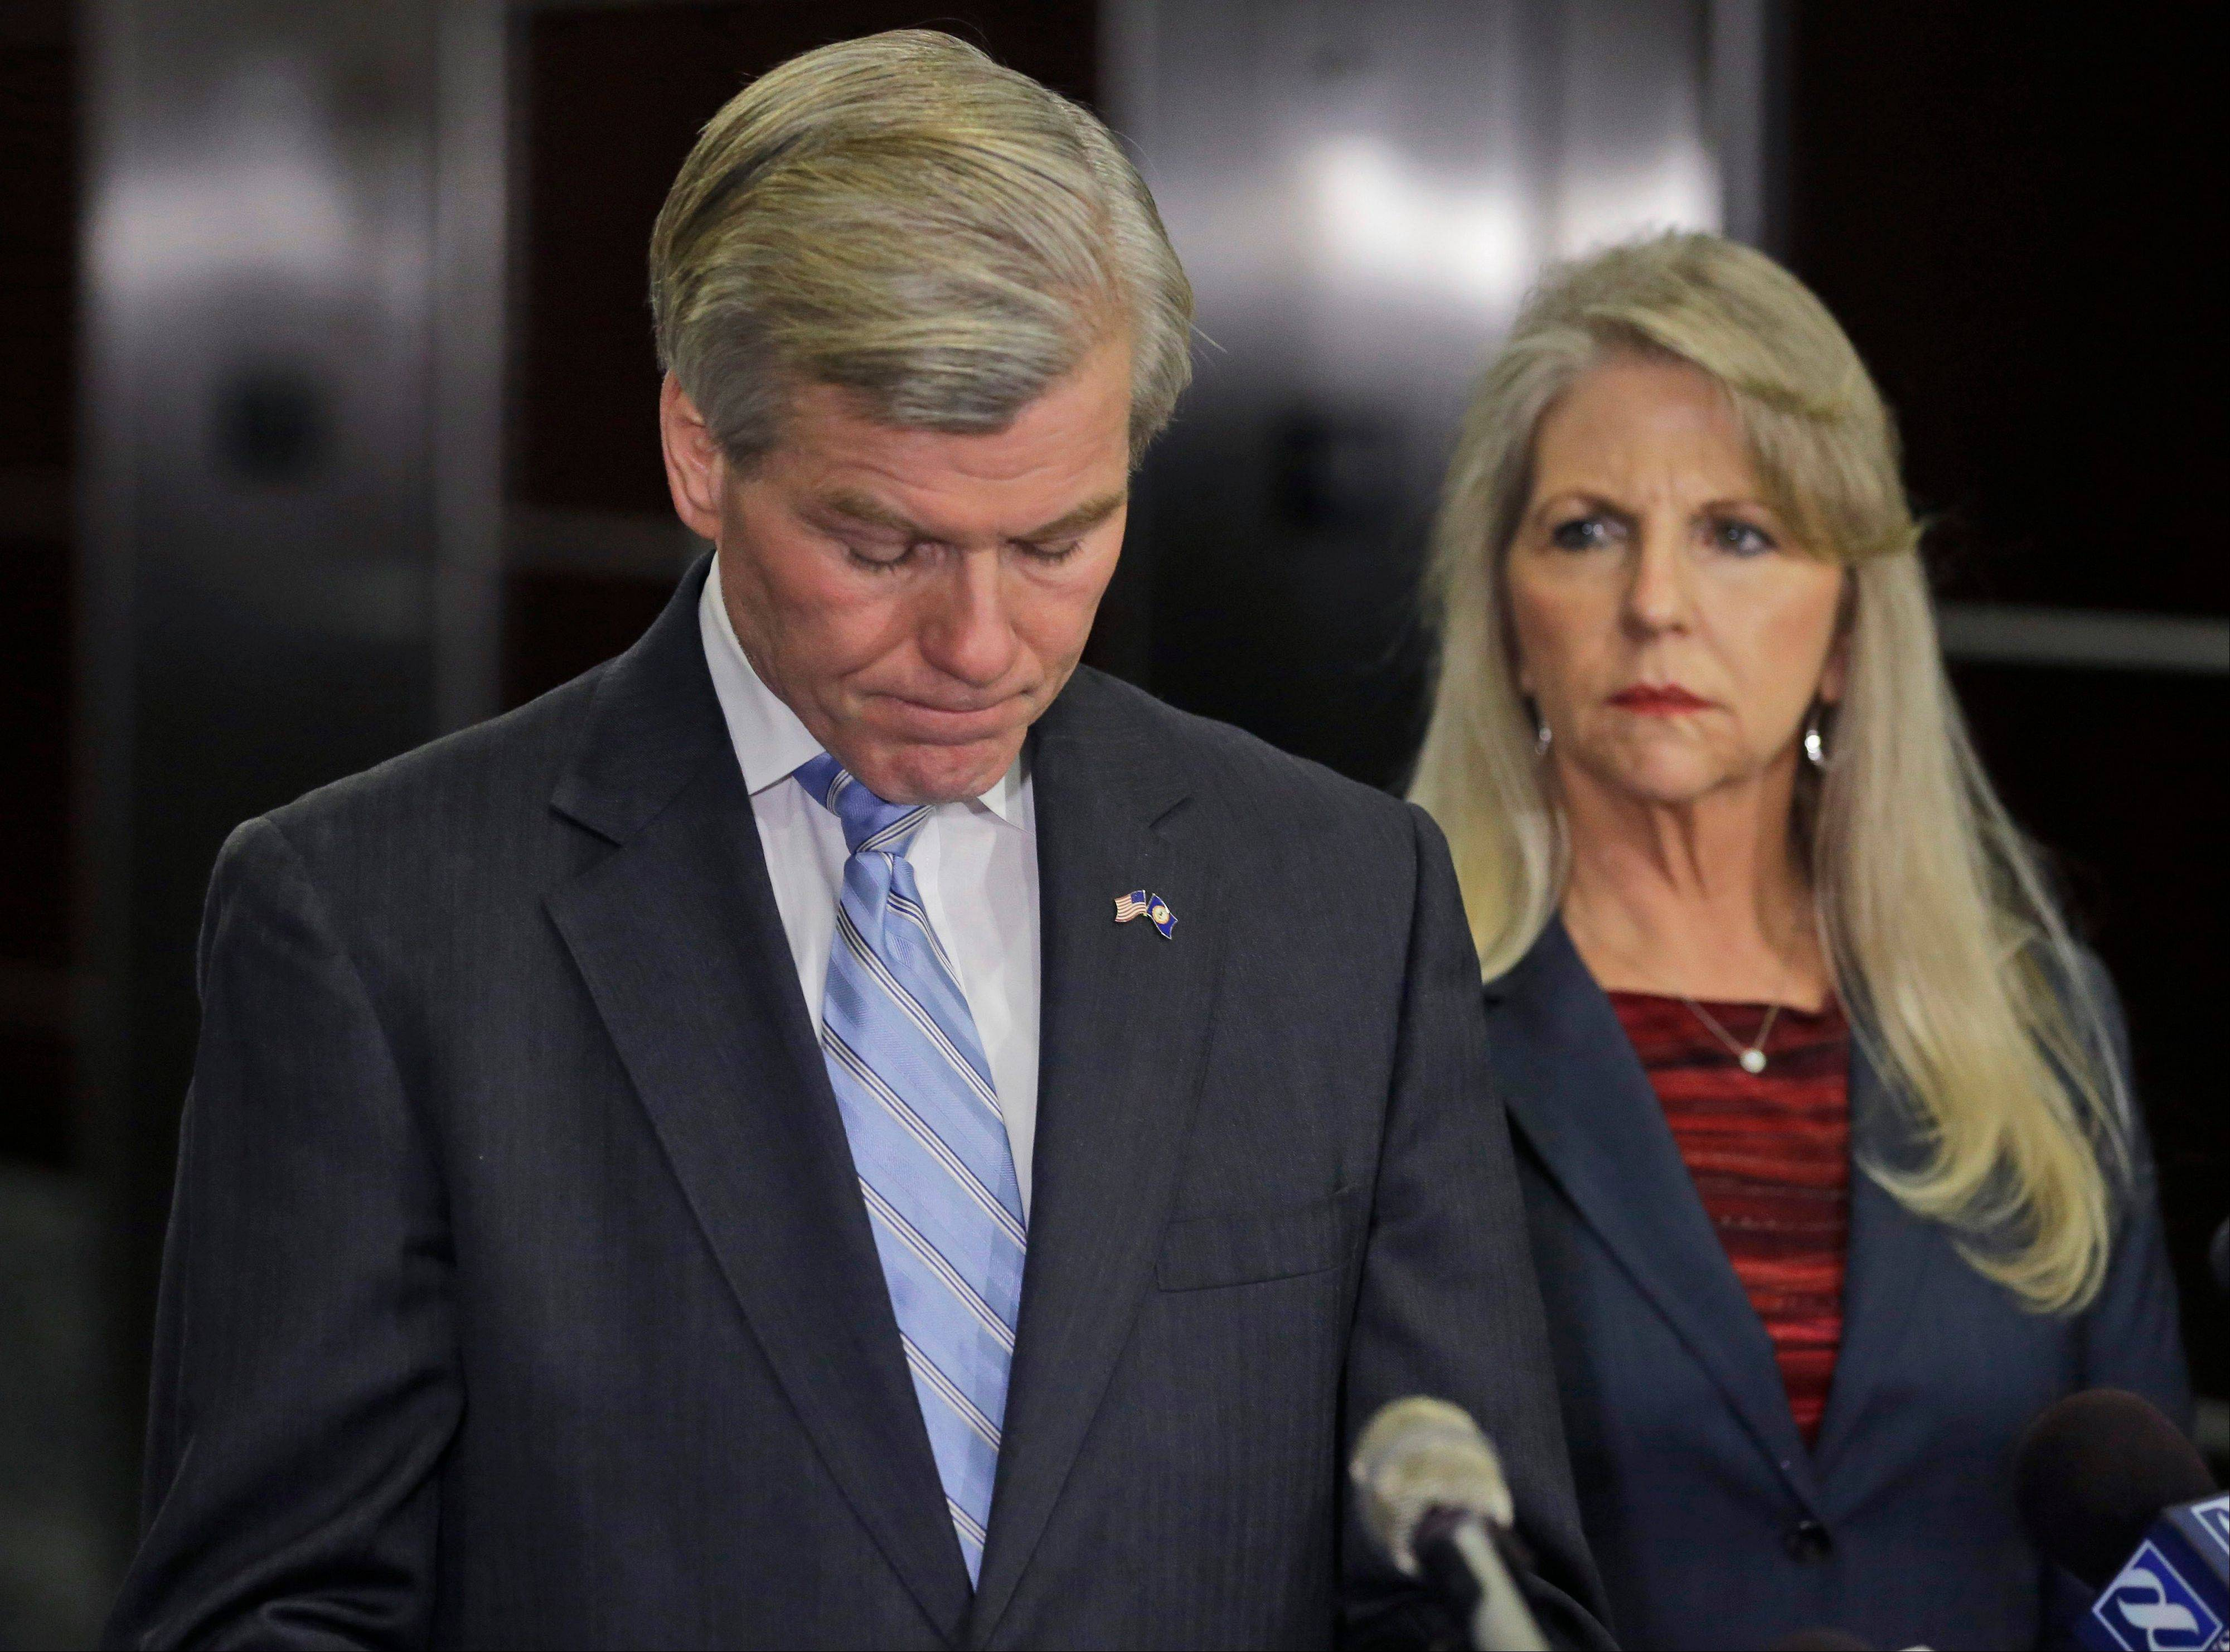 Former Virginia Gov. Bob McDonnell pauses while making a statement as his wife, Maureen, right, listens, in Richmond, Va., Tuesday.